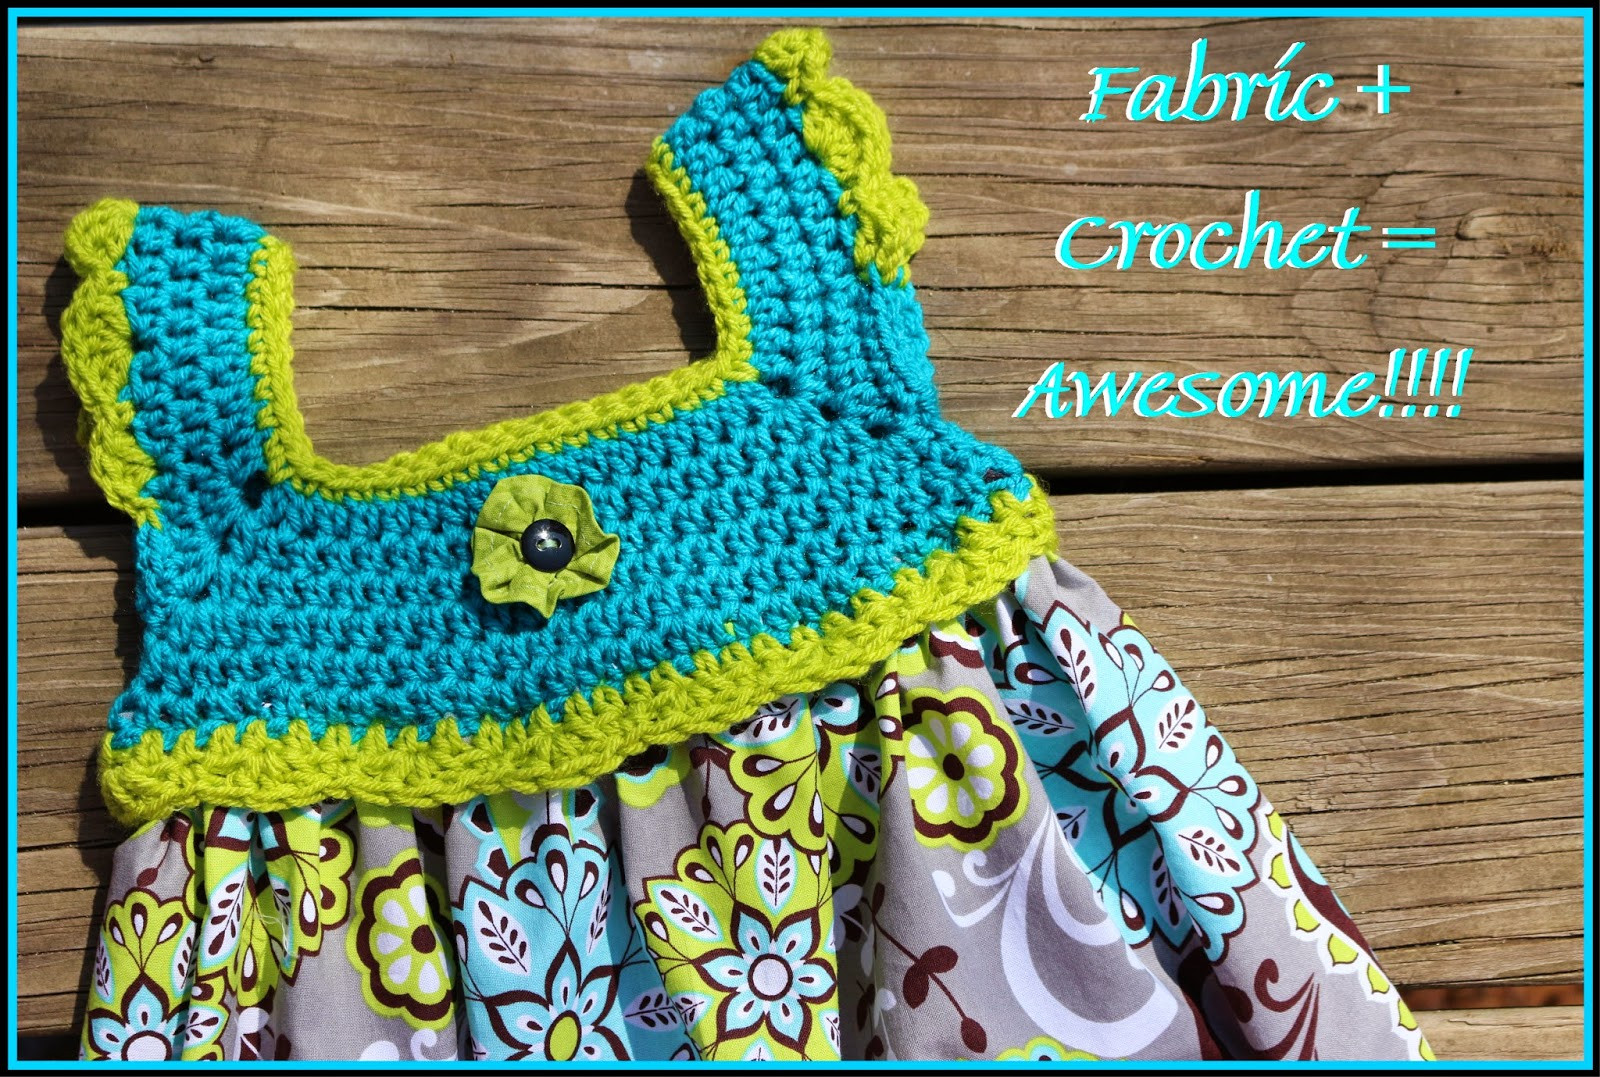 Elegant This Housewife Life Crochet Fabric = Awesome Free Pattern Crochet Material Of Superb 44 Ideas Crochet Material